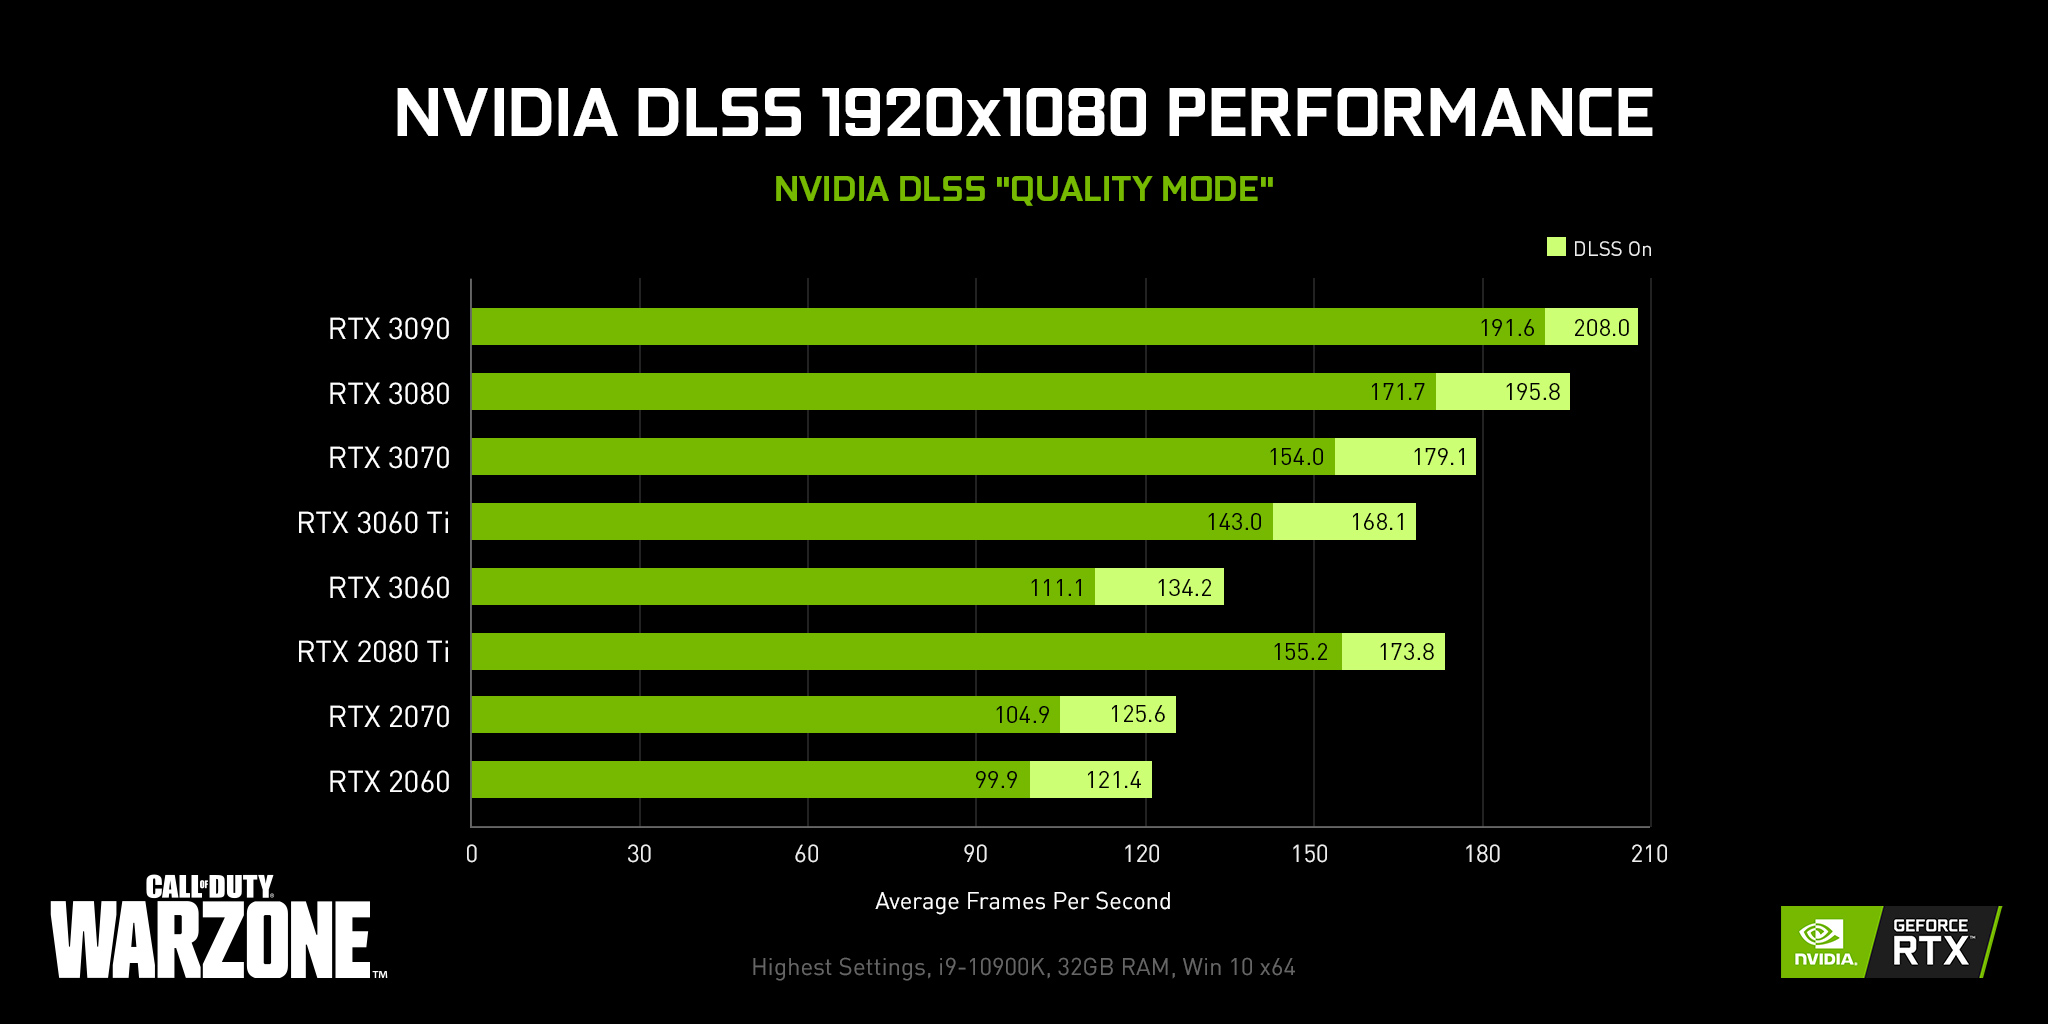 Boost Your Warzone™ and Modern Warfare® Performance on PC with NVIDIA DLSS  and other features.